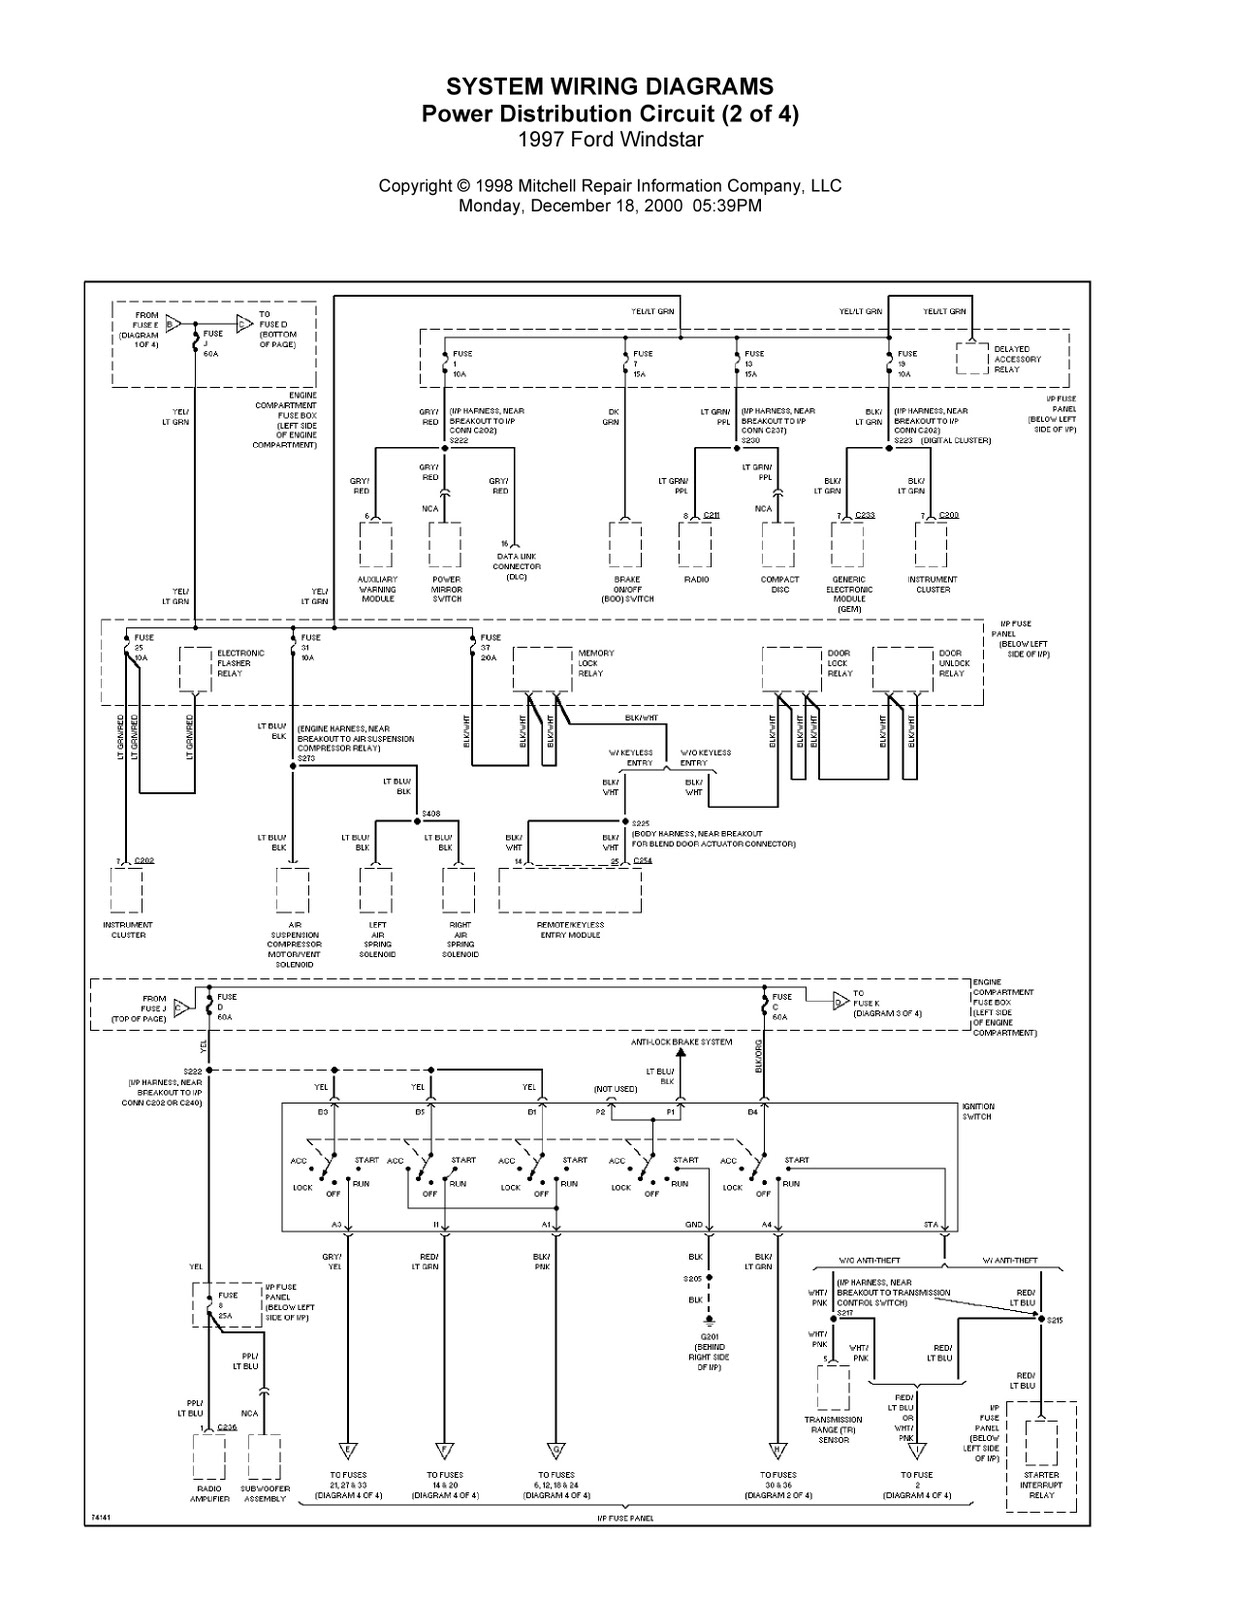 Complete System Wiring Diagrams 1997 Ford Windstar Fuse Diagram 2003 Abs Recall